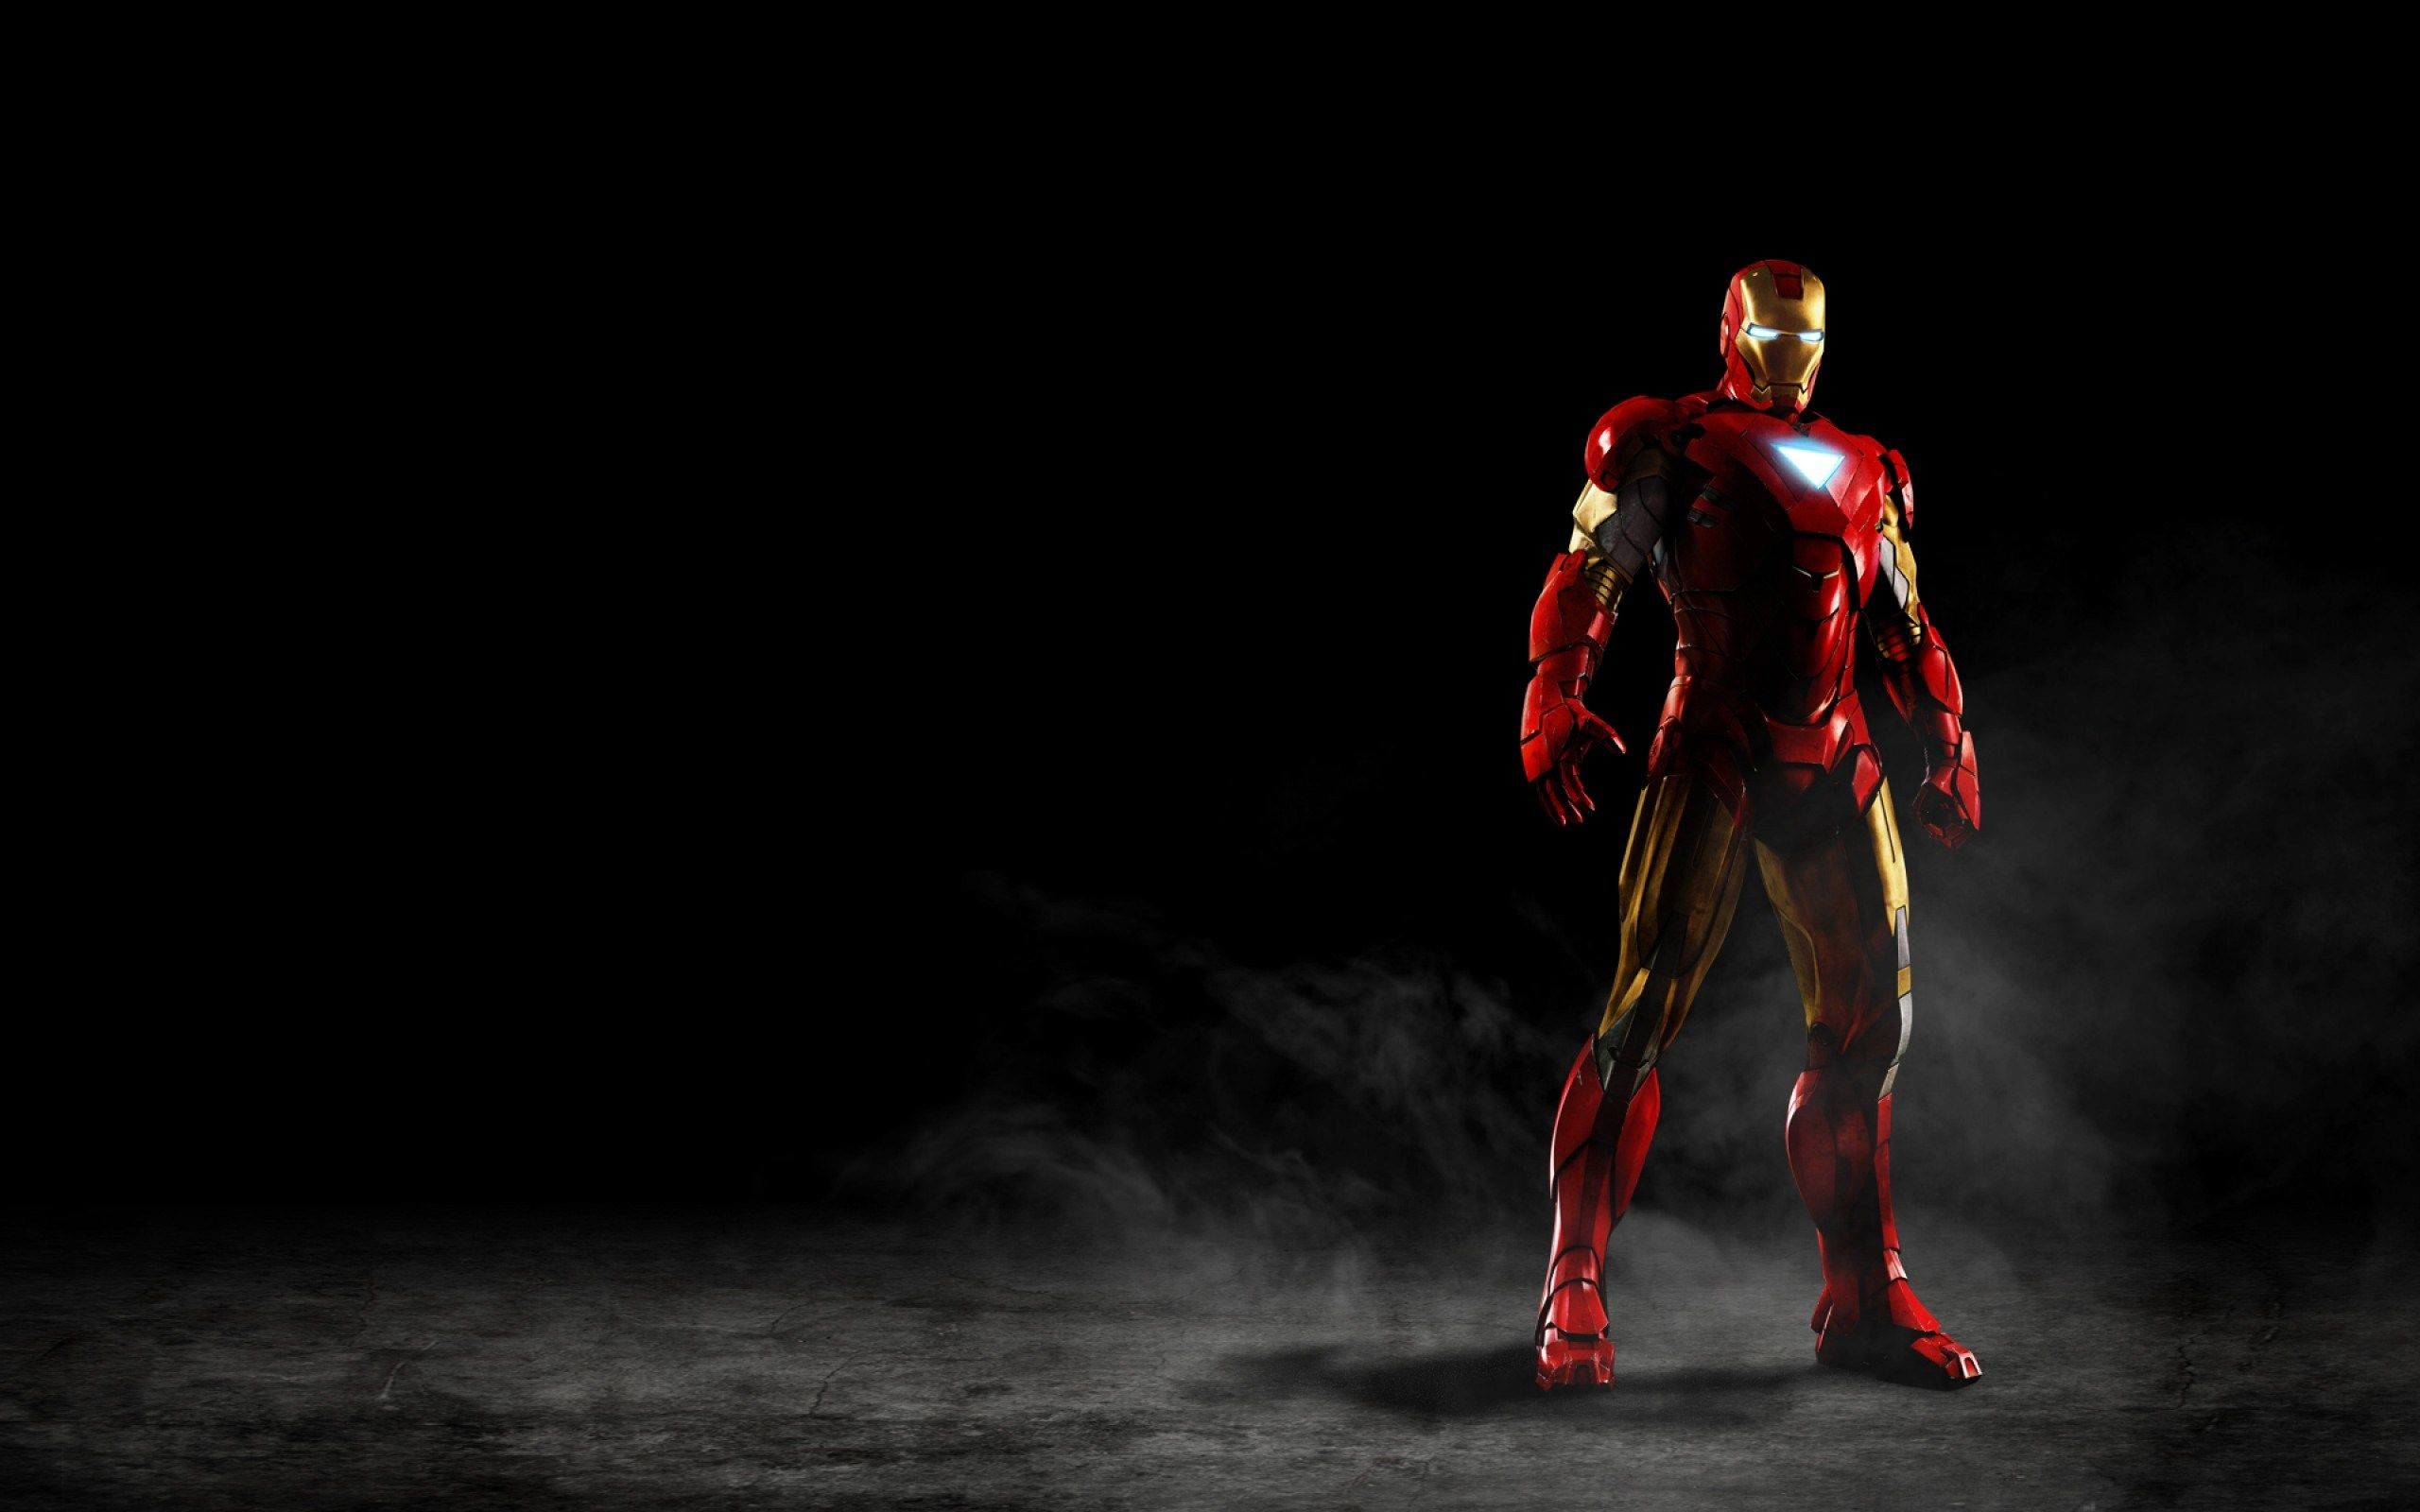 Related Wallpapers from Drive Movie. Iron Man Wallpaper (1)